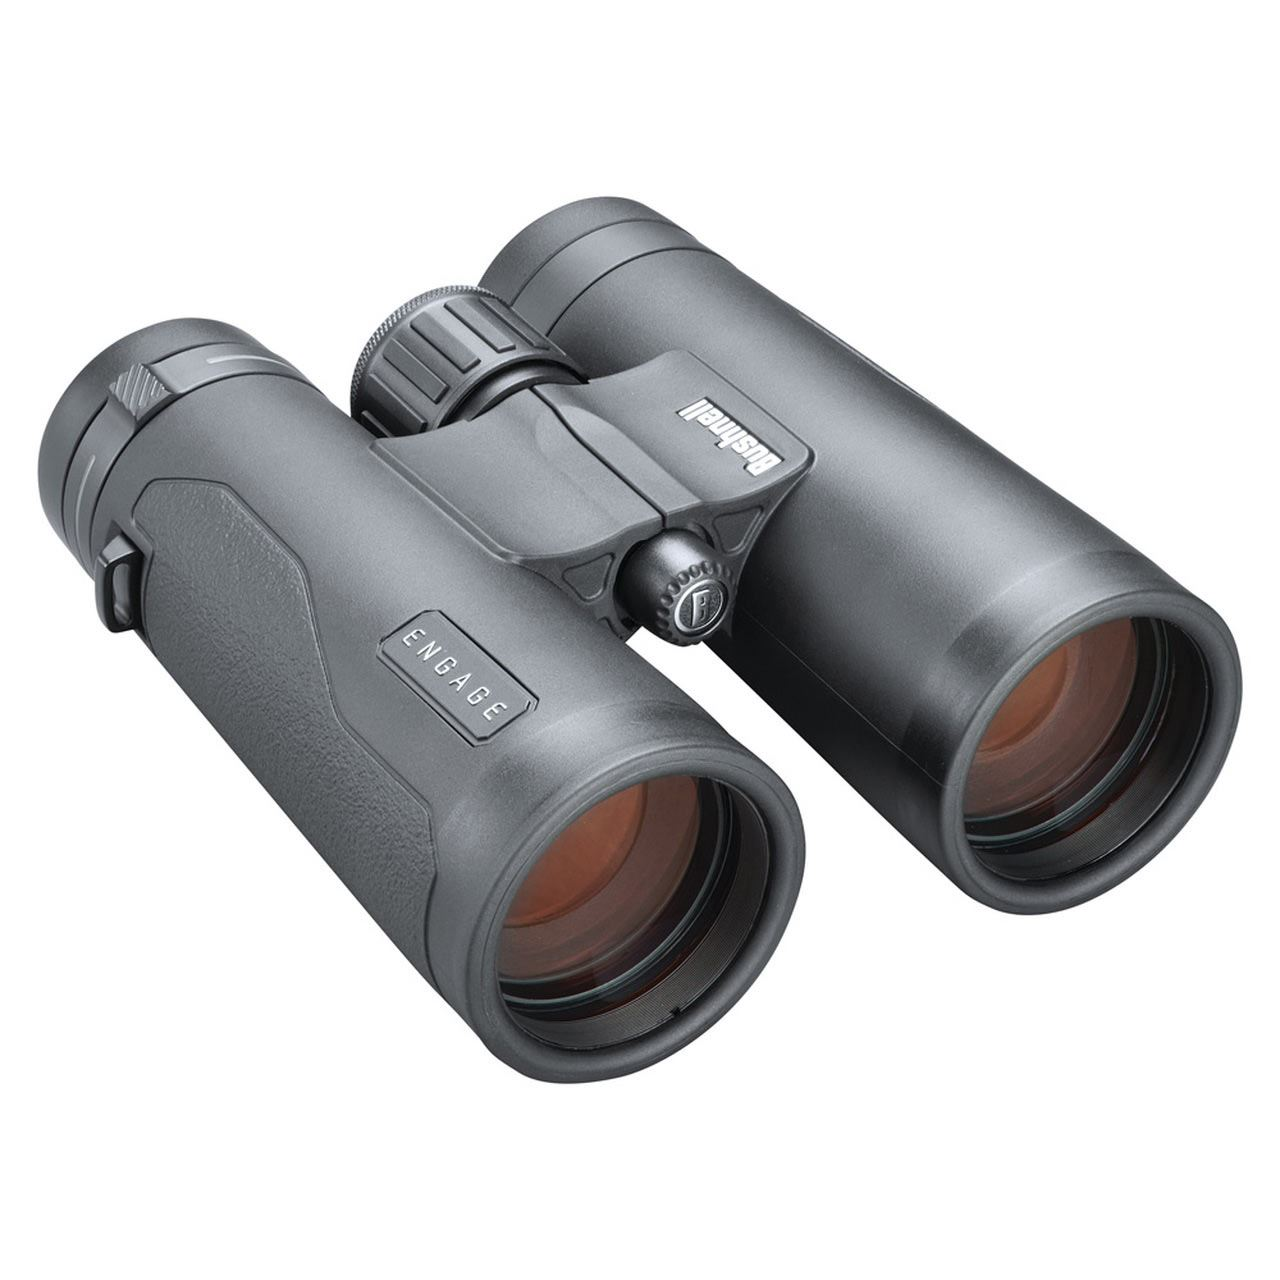 Image of Bushnell Engage 8x42 Binoculars